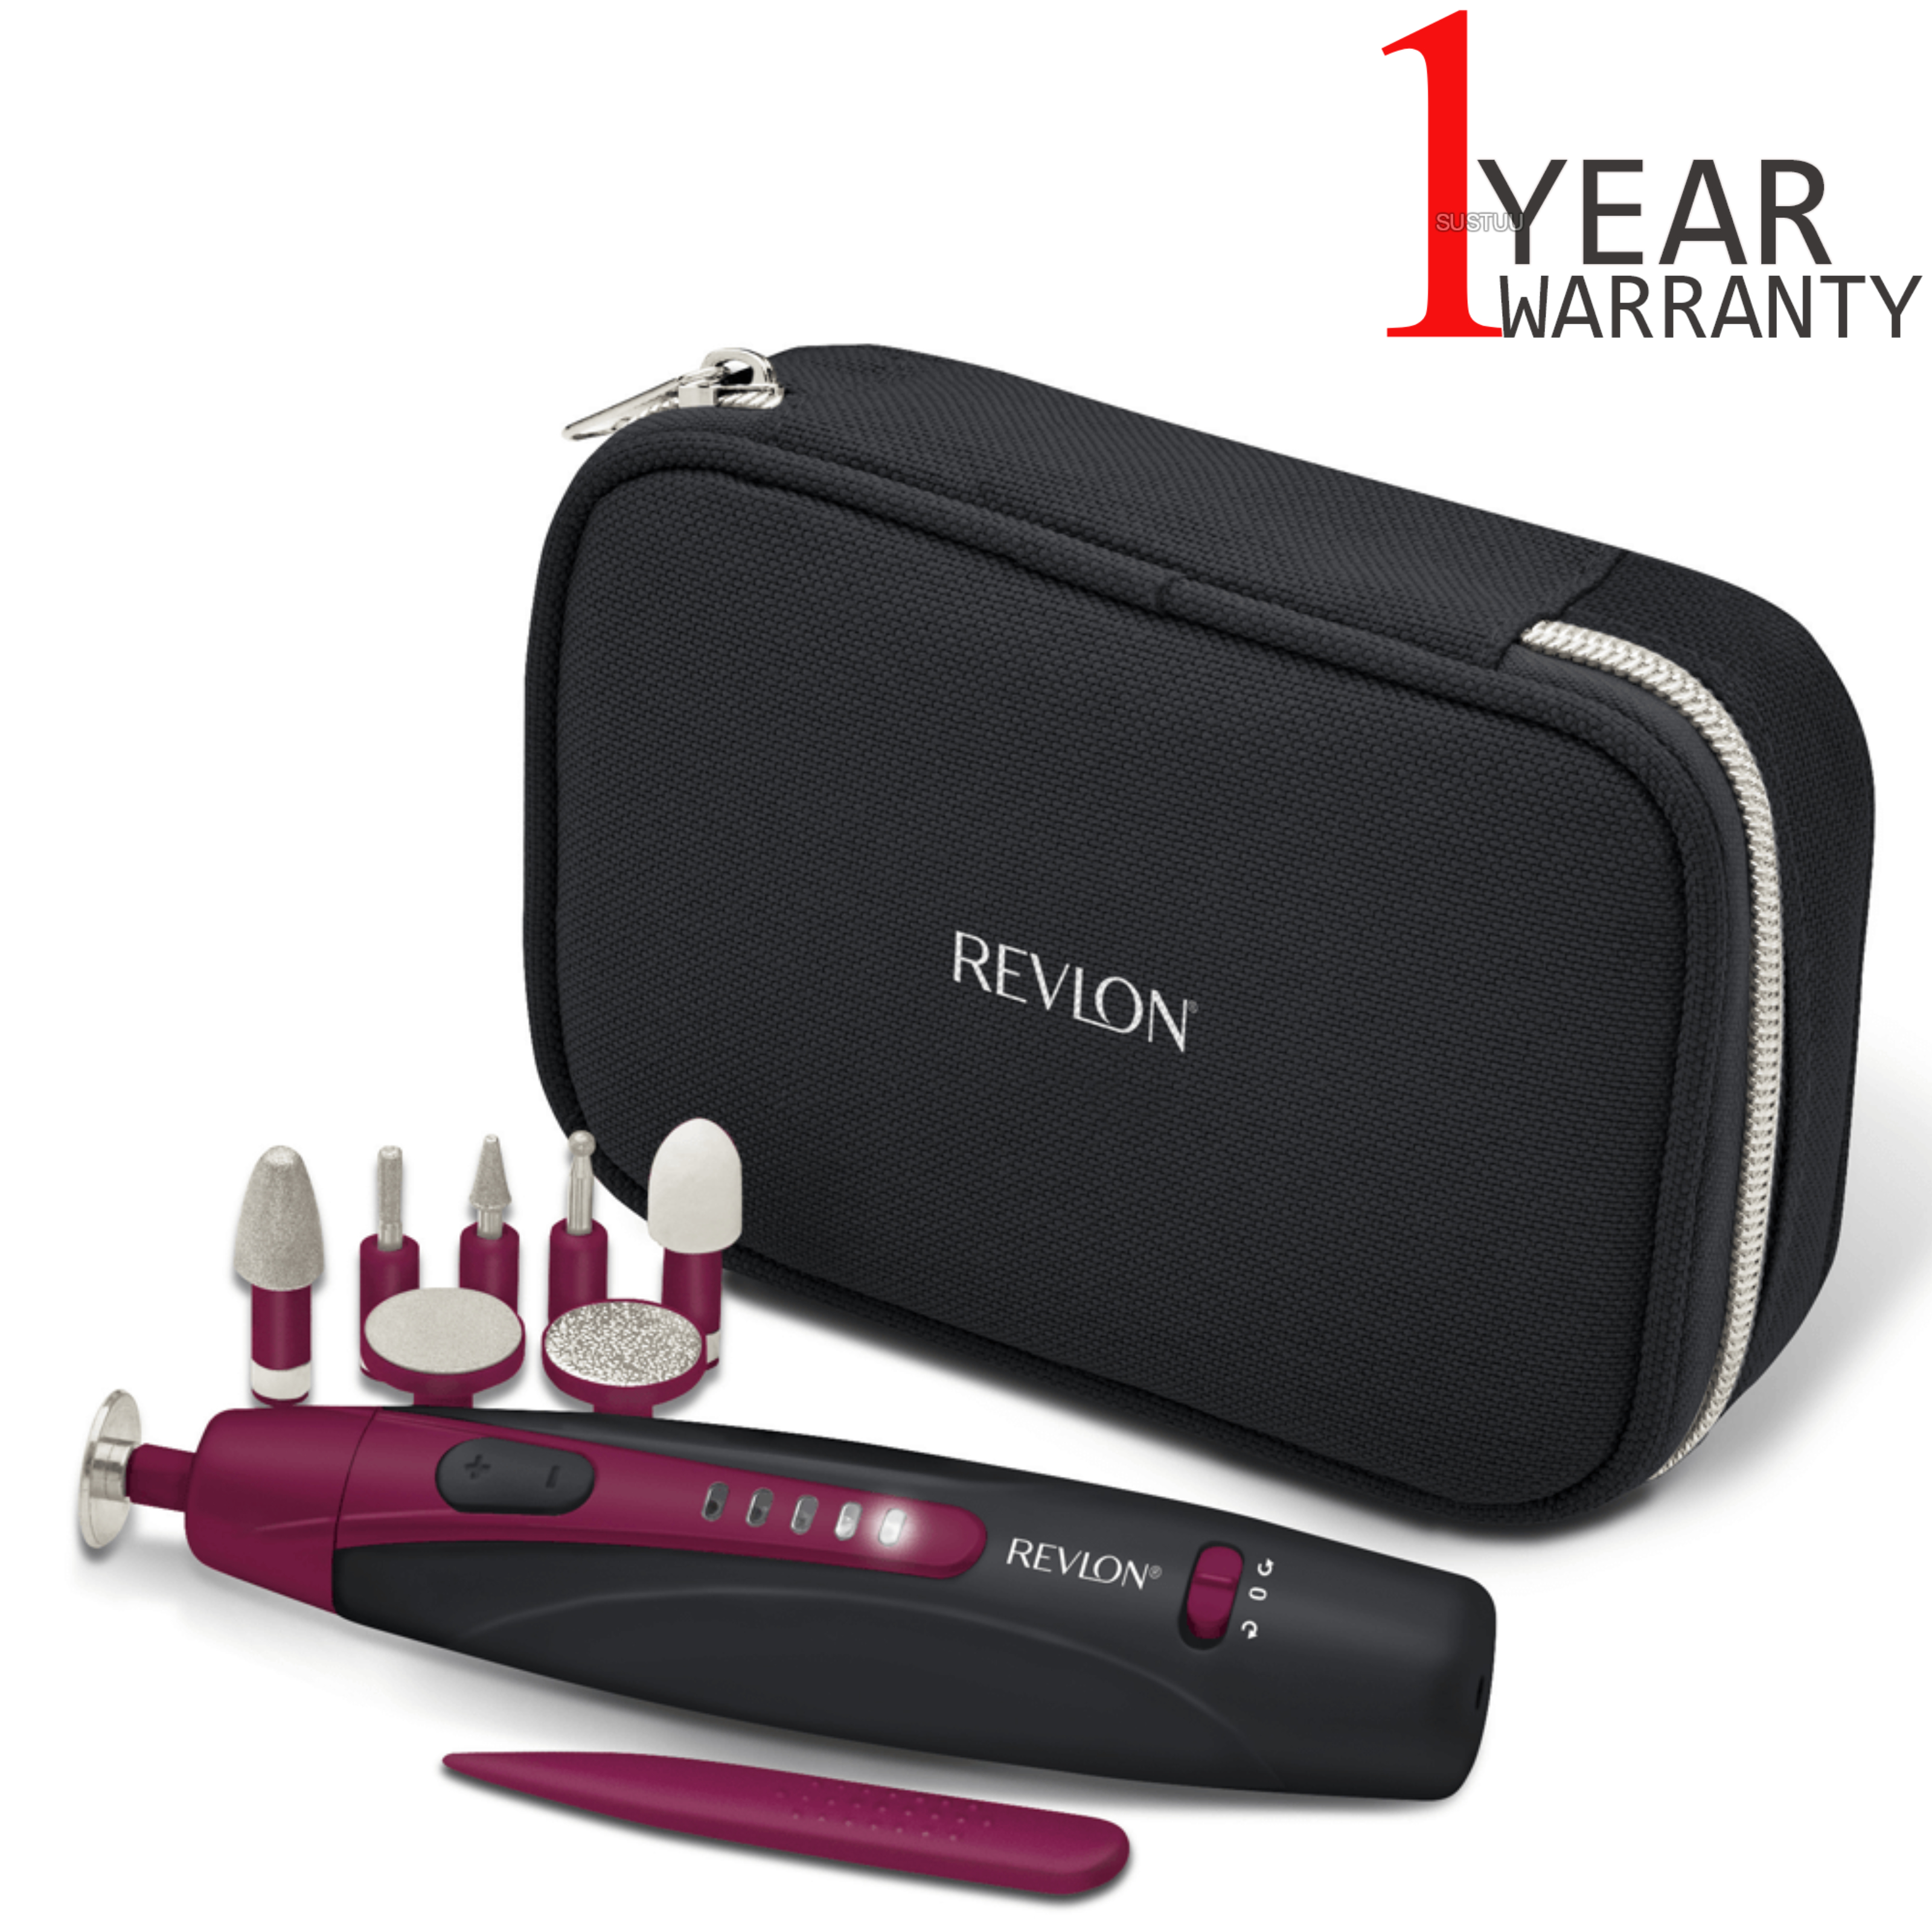 Revlon Travel Chic Manicure & Pedicure Set | Portable & Rechargeable | 9 Attachments